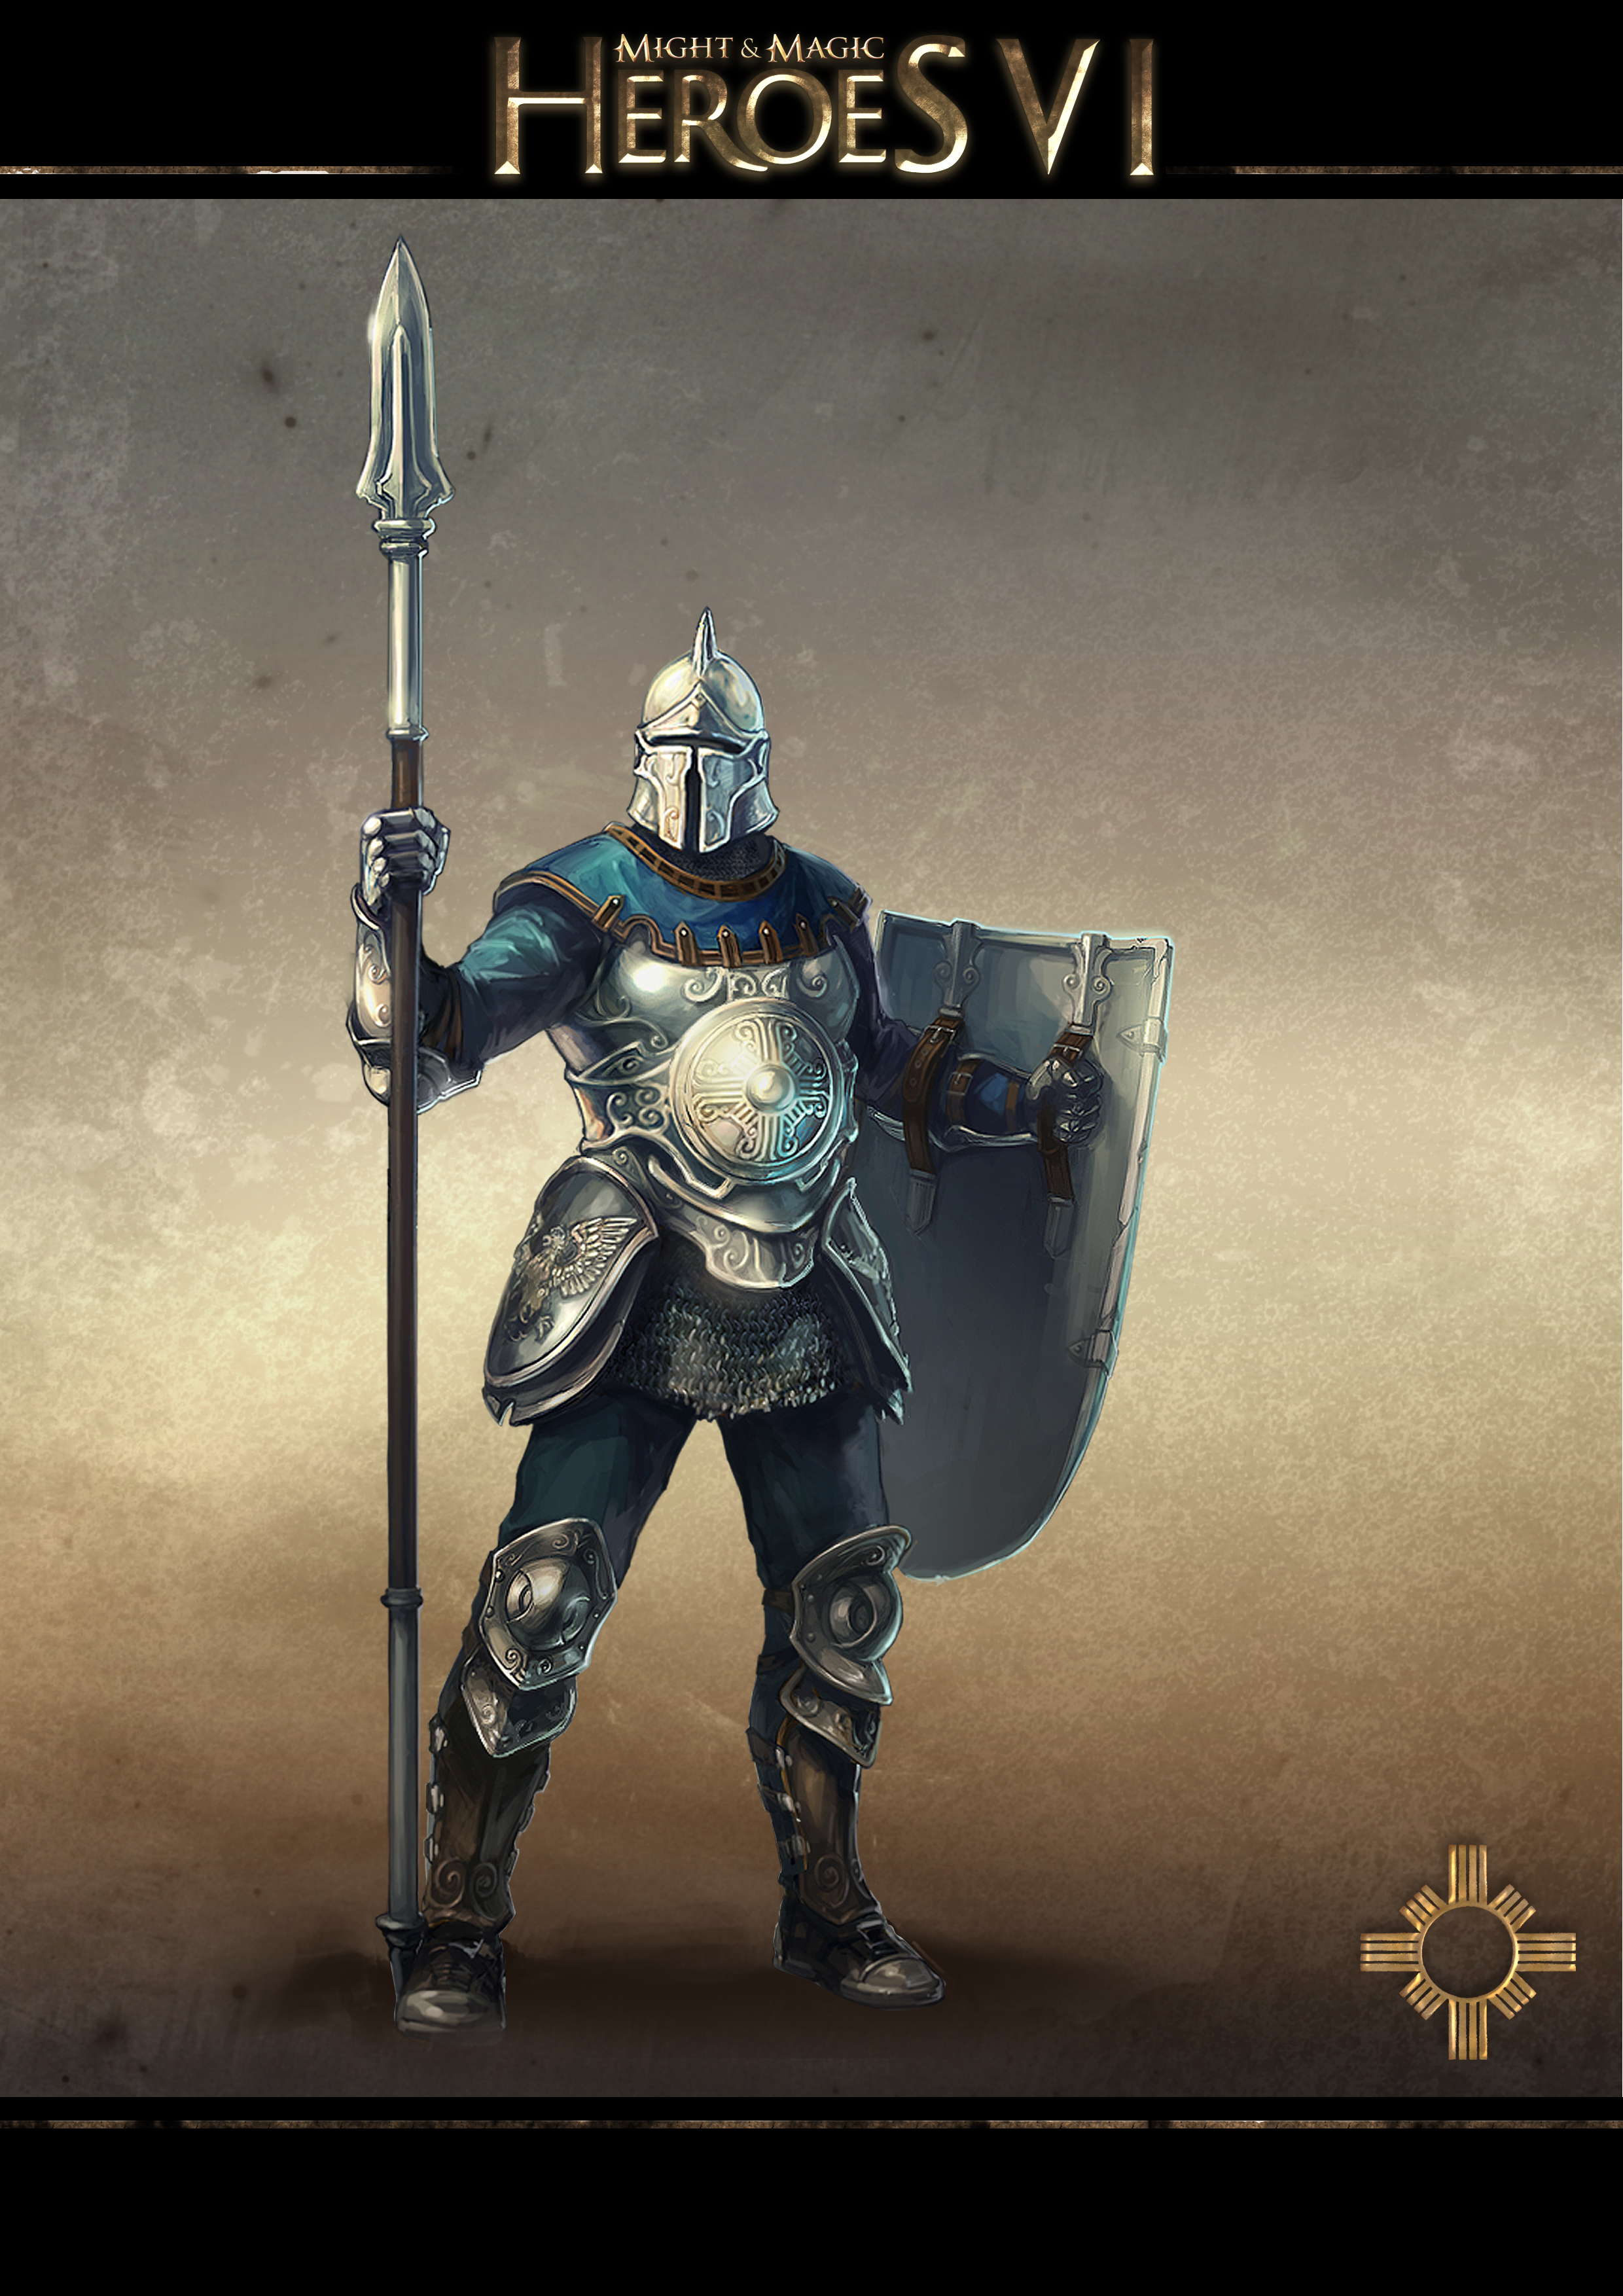 Might and Magic Heroes-6 22.jpg - Might and Magic: Heroes 6